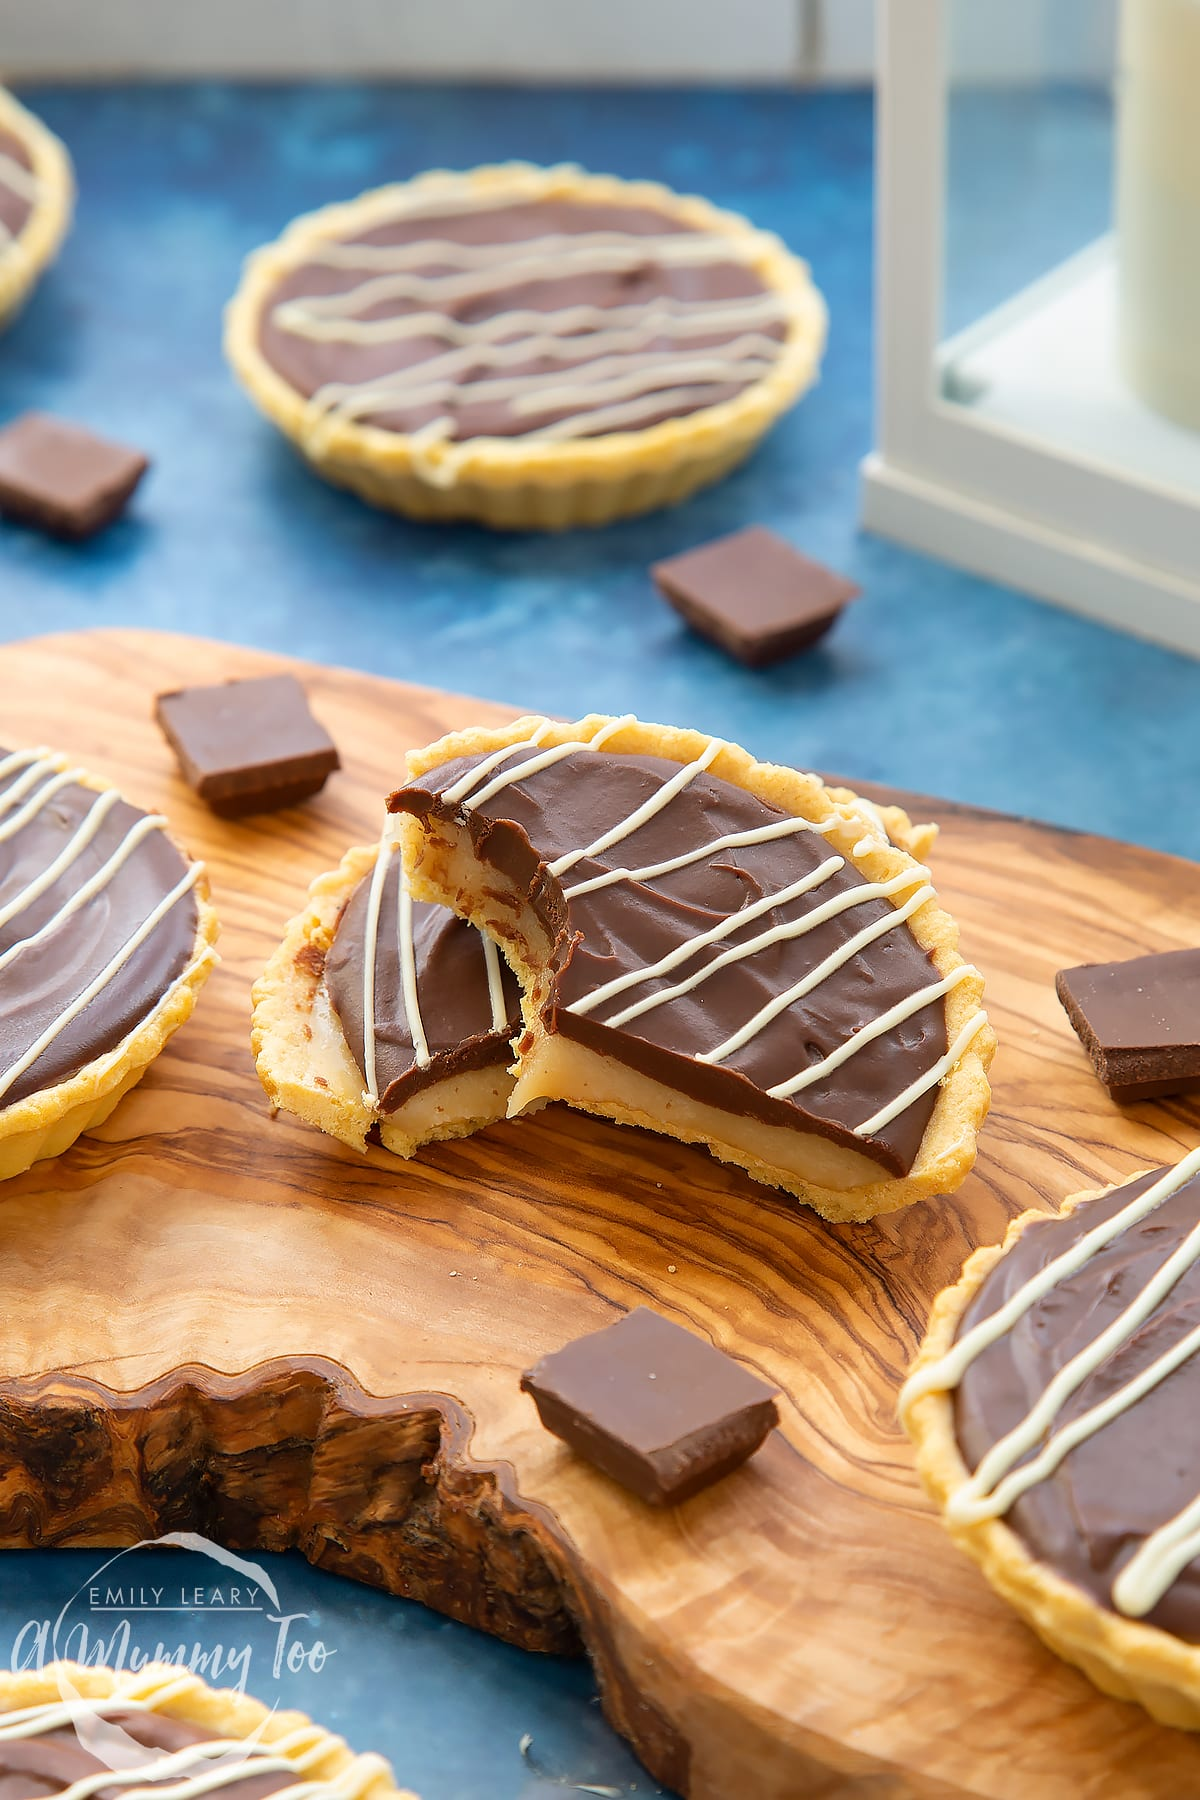 Mini chocolate tarts on an olive board. One tart has been cut in half. Once half has a bite out of it.